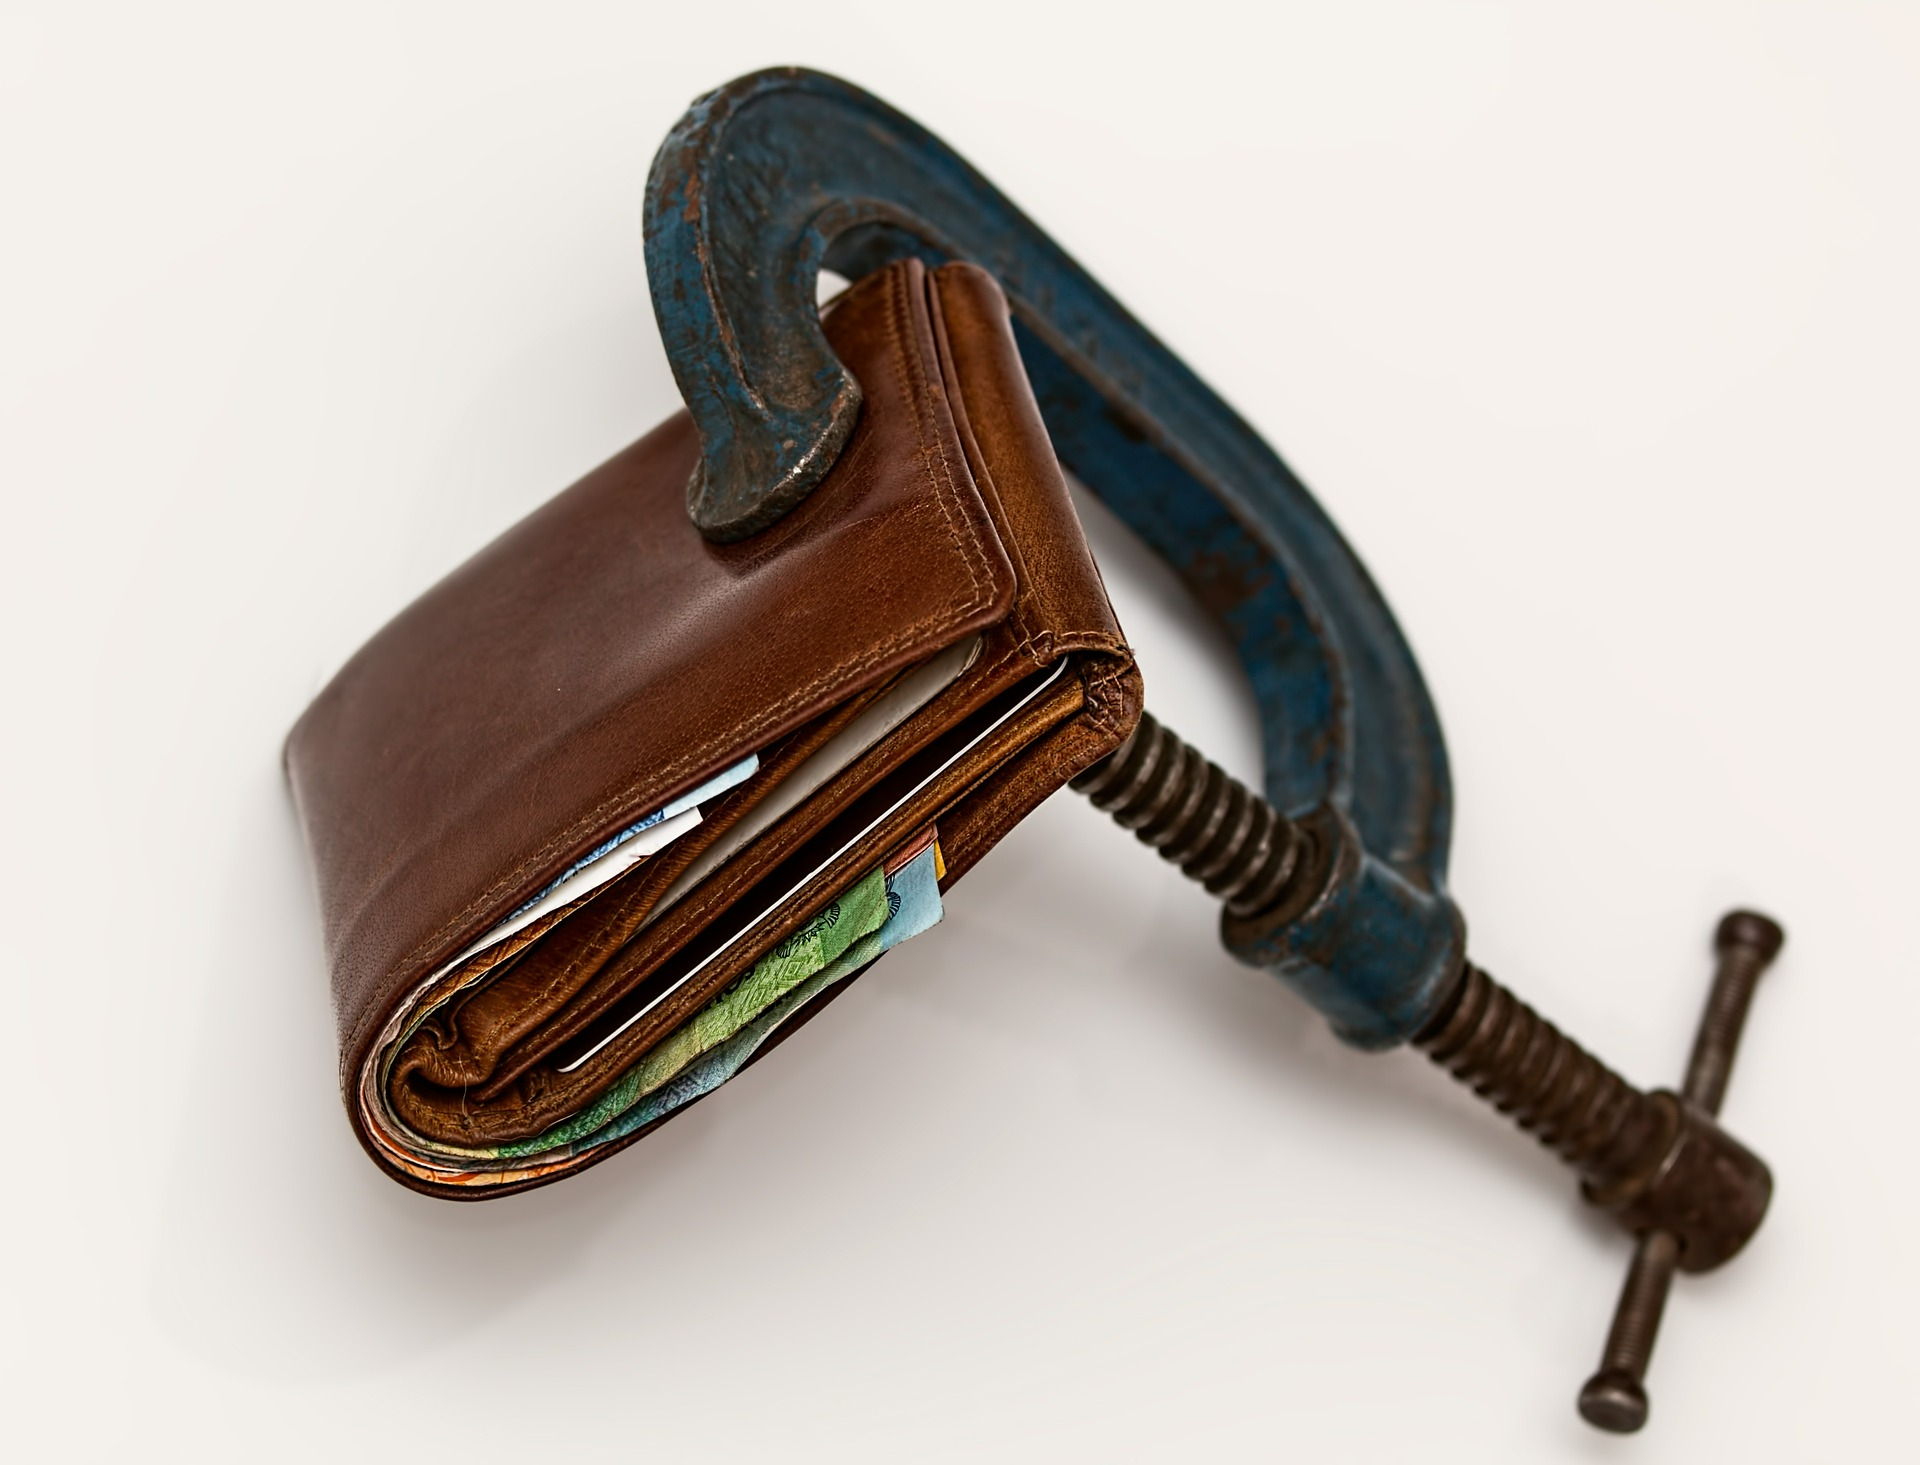 A wallet being squeezed by a mechanical device. The image is meant to depict the financial stress of the Cost of Goods Sold (COGS).